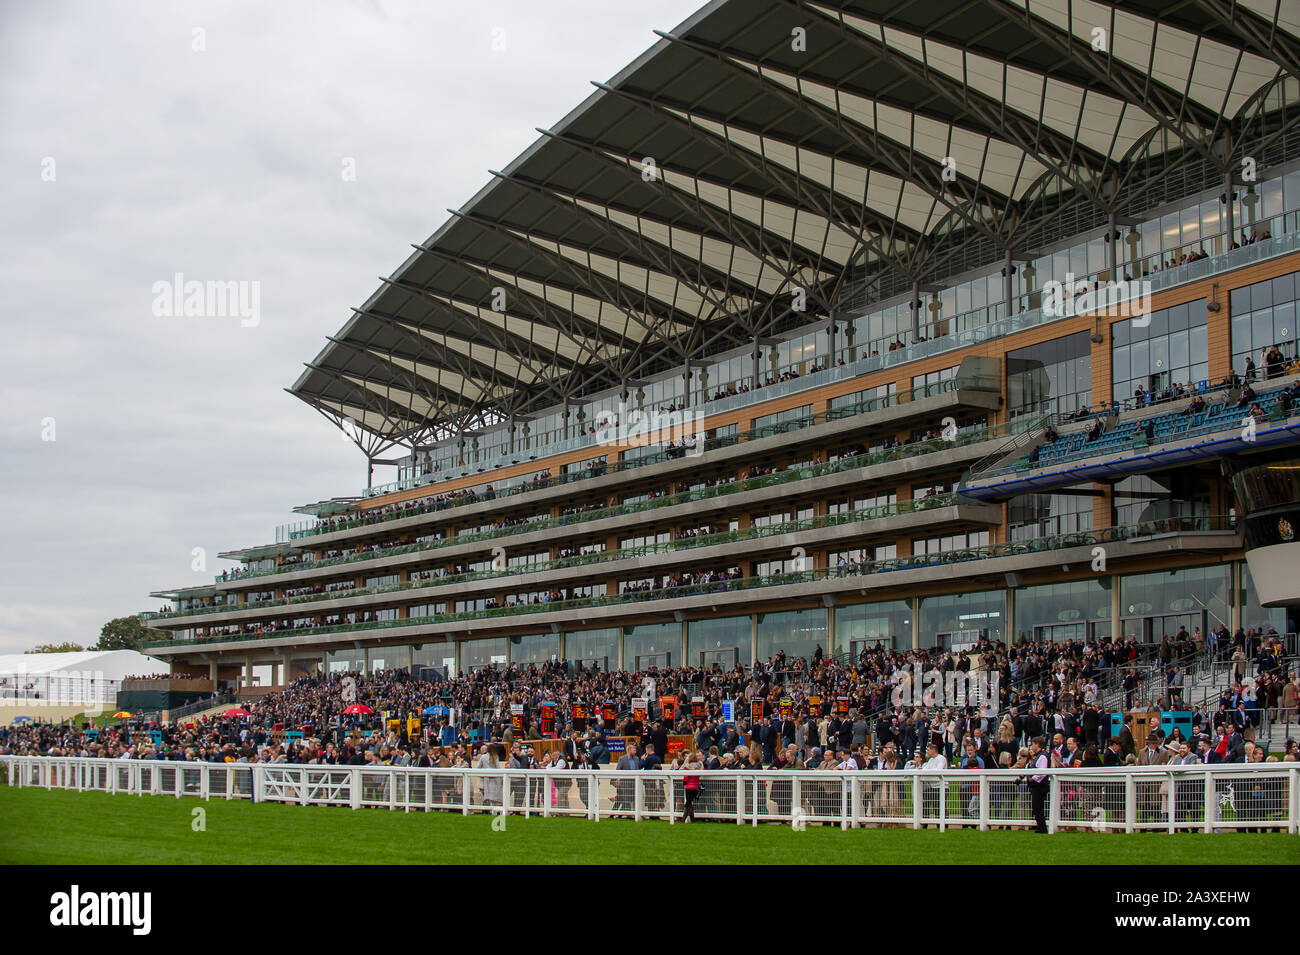 Autumn Racing Weekend & Ascot Beer Festival, Ascot Racecourse, Ascot, Berkshire, UK. 5th October, 2019. The Grandstand at Ascot Racecourse packed with racegoers enjoying the racing. Credit: Maureen McLean/Alamy Stock Photo